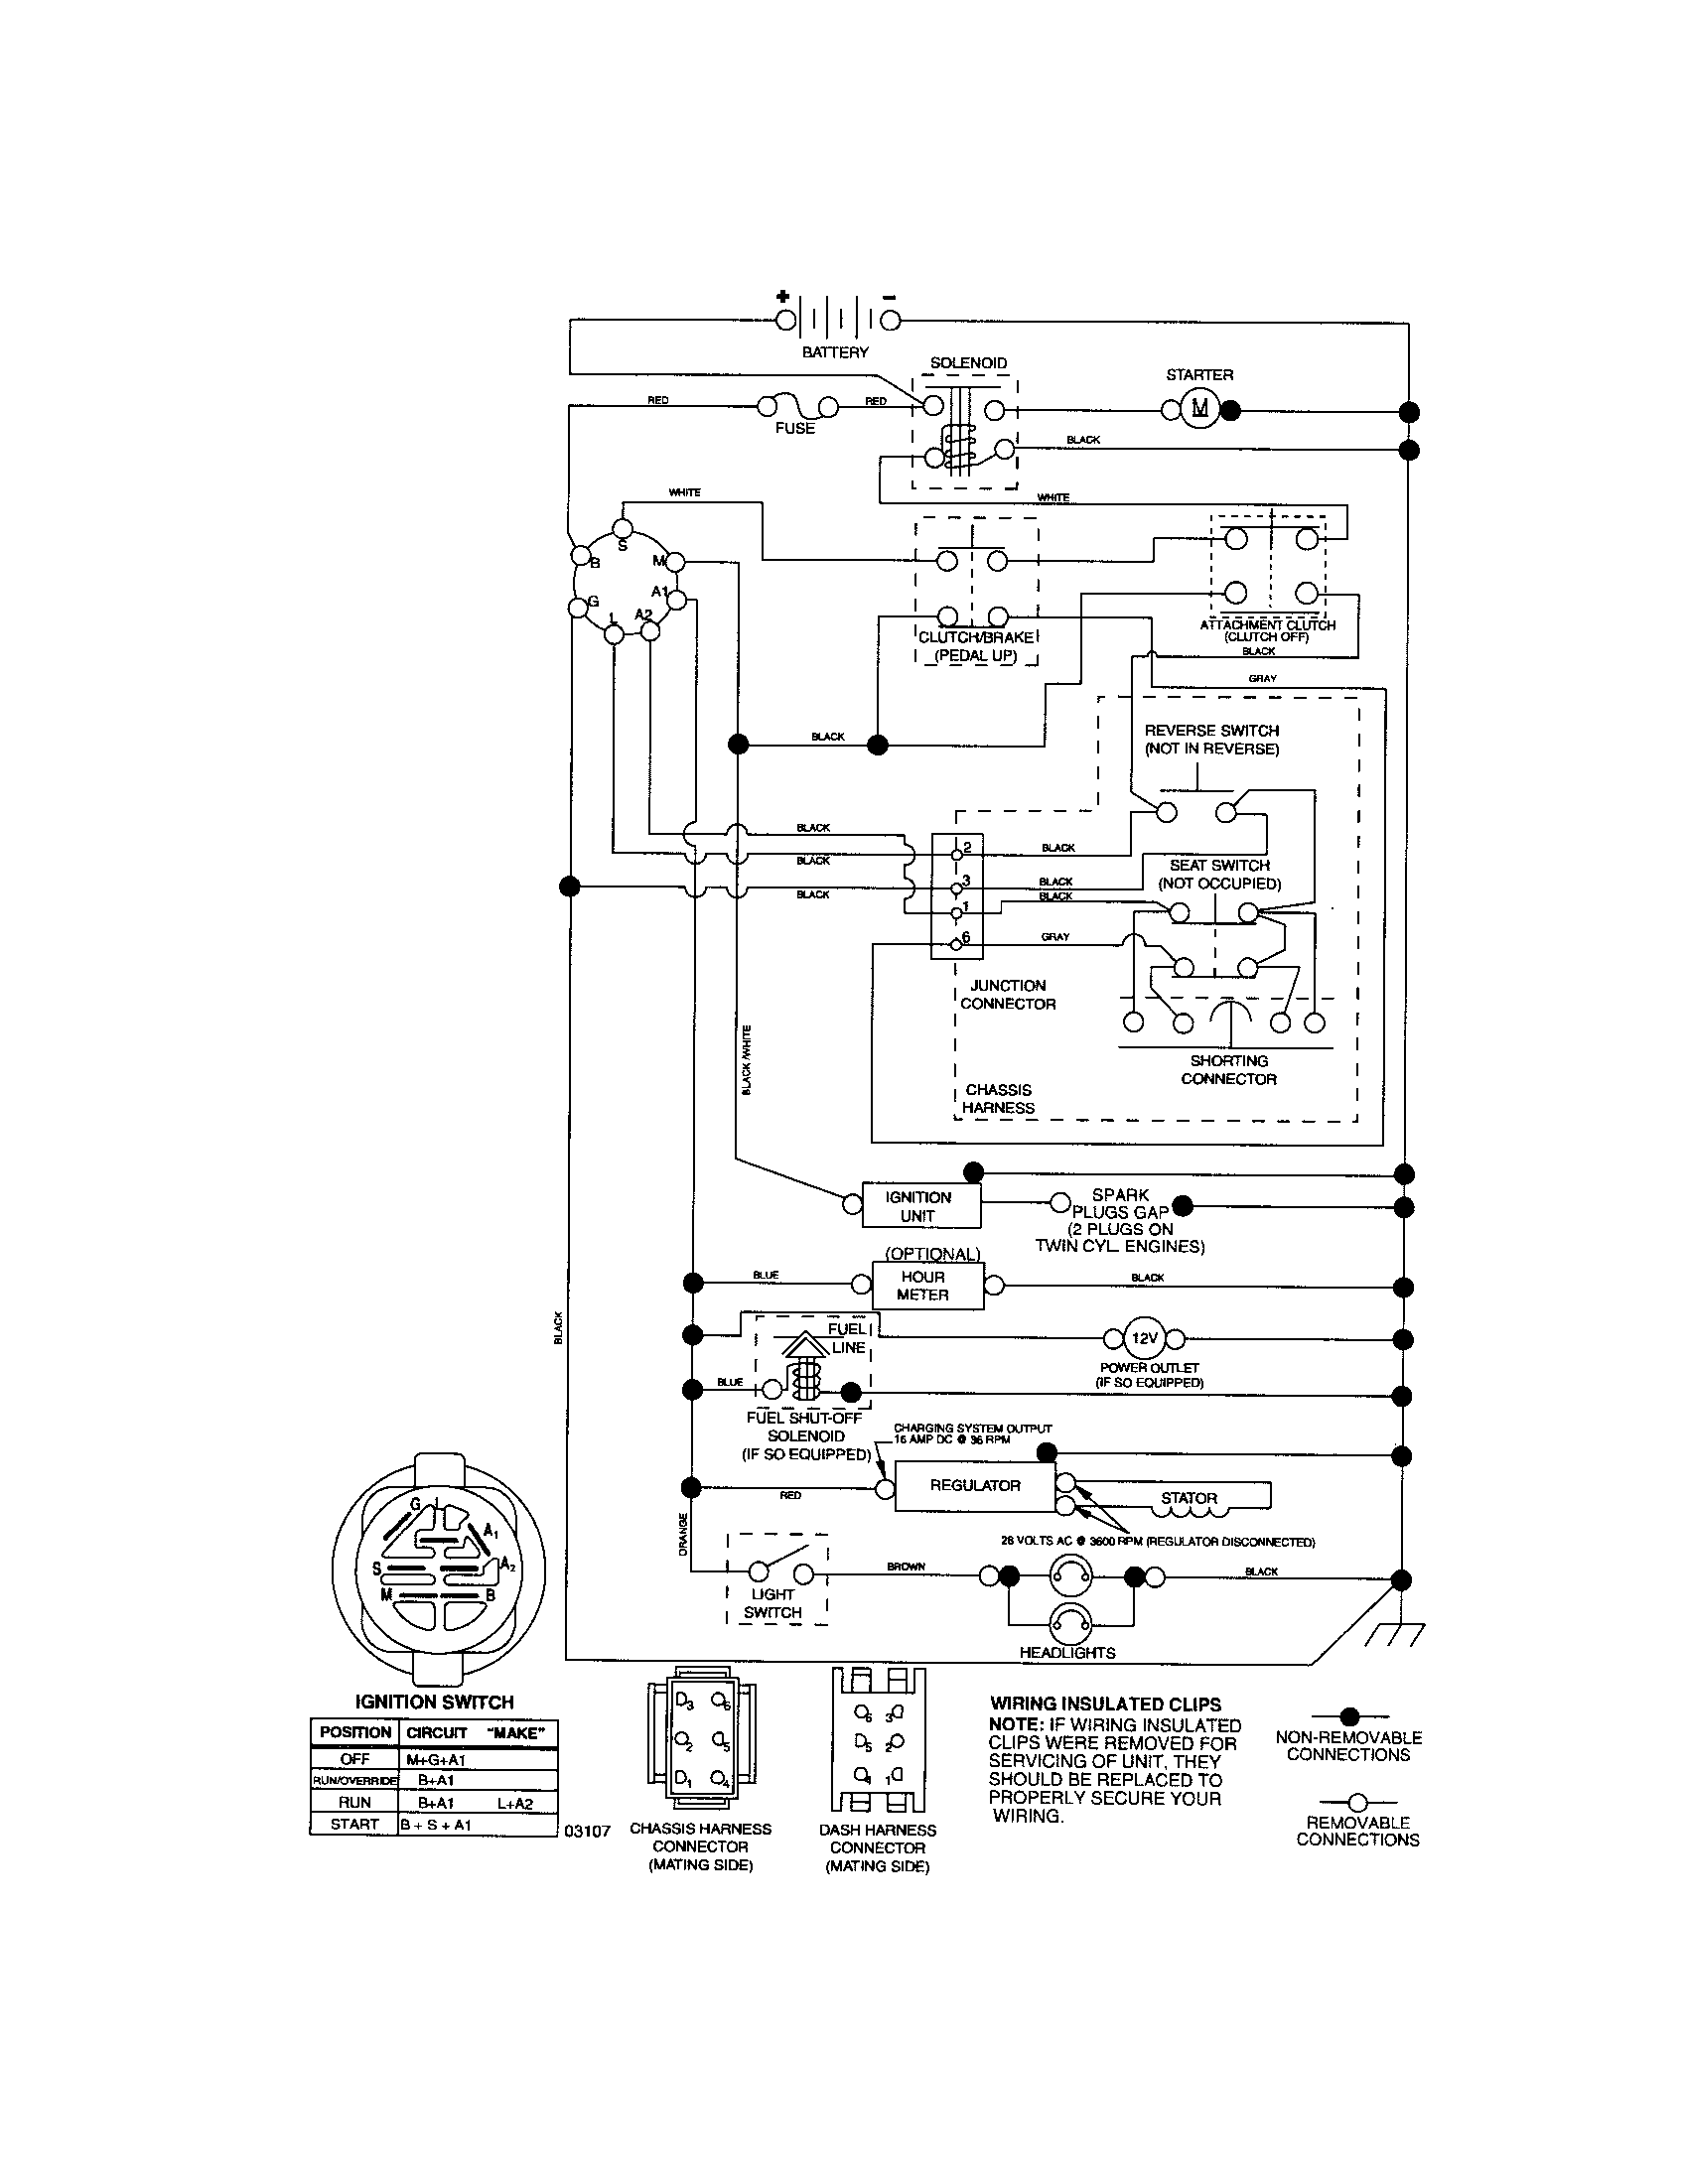 6af5f1447fd13c8443376822ddc1e105 craftsman riding mower electrical diagram wiring diagram goodman a30-15 wiring diagram at soozxer.org